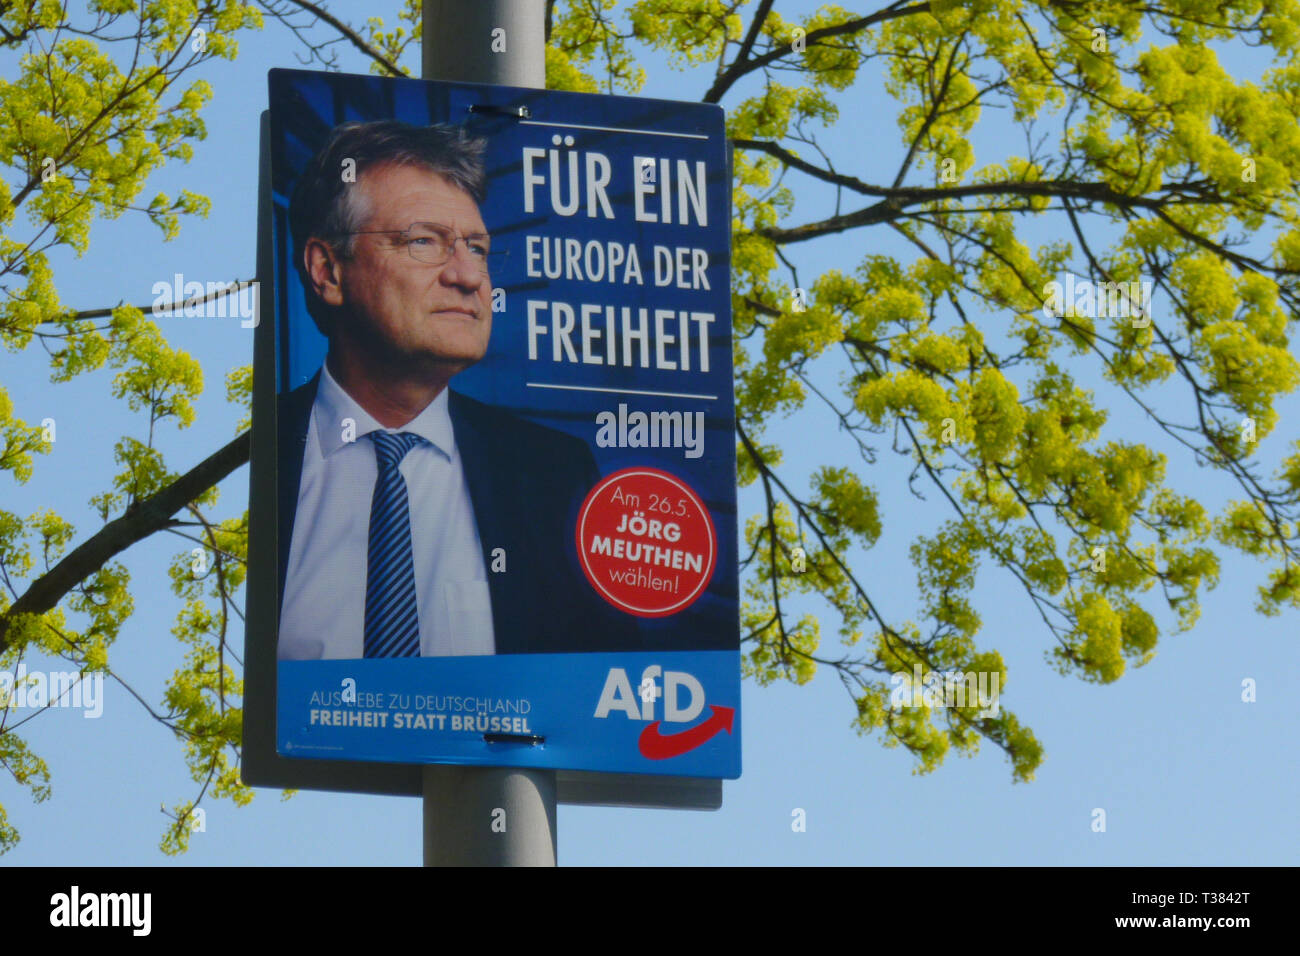 Berlin,  Germany. 7th Apr, 2019. An election poster of Joerg Meuthen, lead candidate for the Euro Parliament of the Alternative for Germany (German: Alternative für Deutschland, AfD), can be seen. From 23 to 26 May 2019, citizens of the European Union will be able to elect the European Parliament for the ninth time. In the Federal Republic of Germany, the election will take place on 26 May 2019. Credit: Jan Scheunert/ZUMA Wire/Alamy Live News - Stock Image